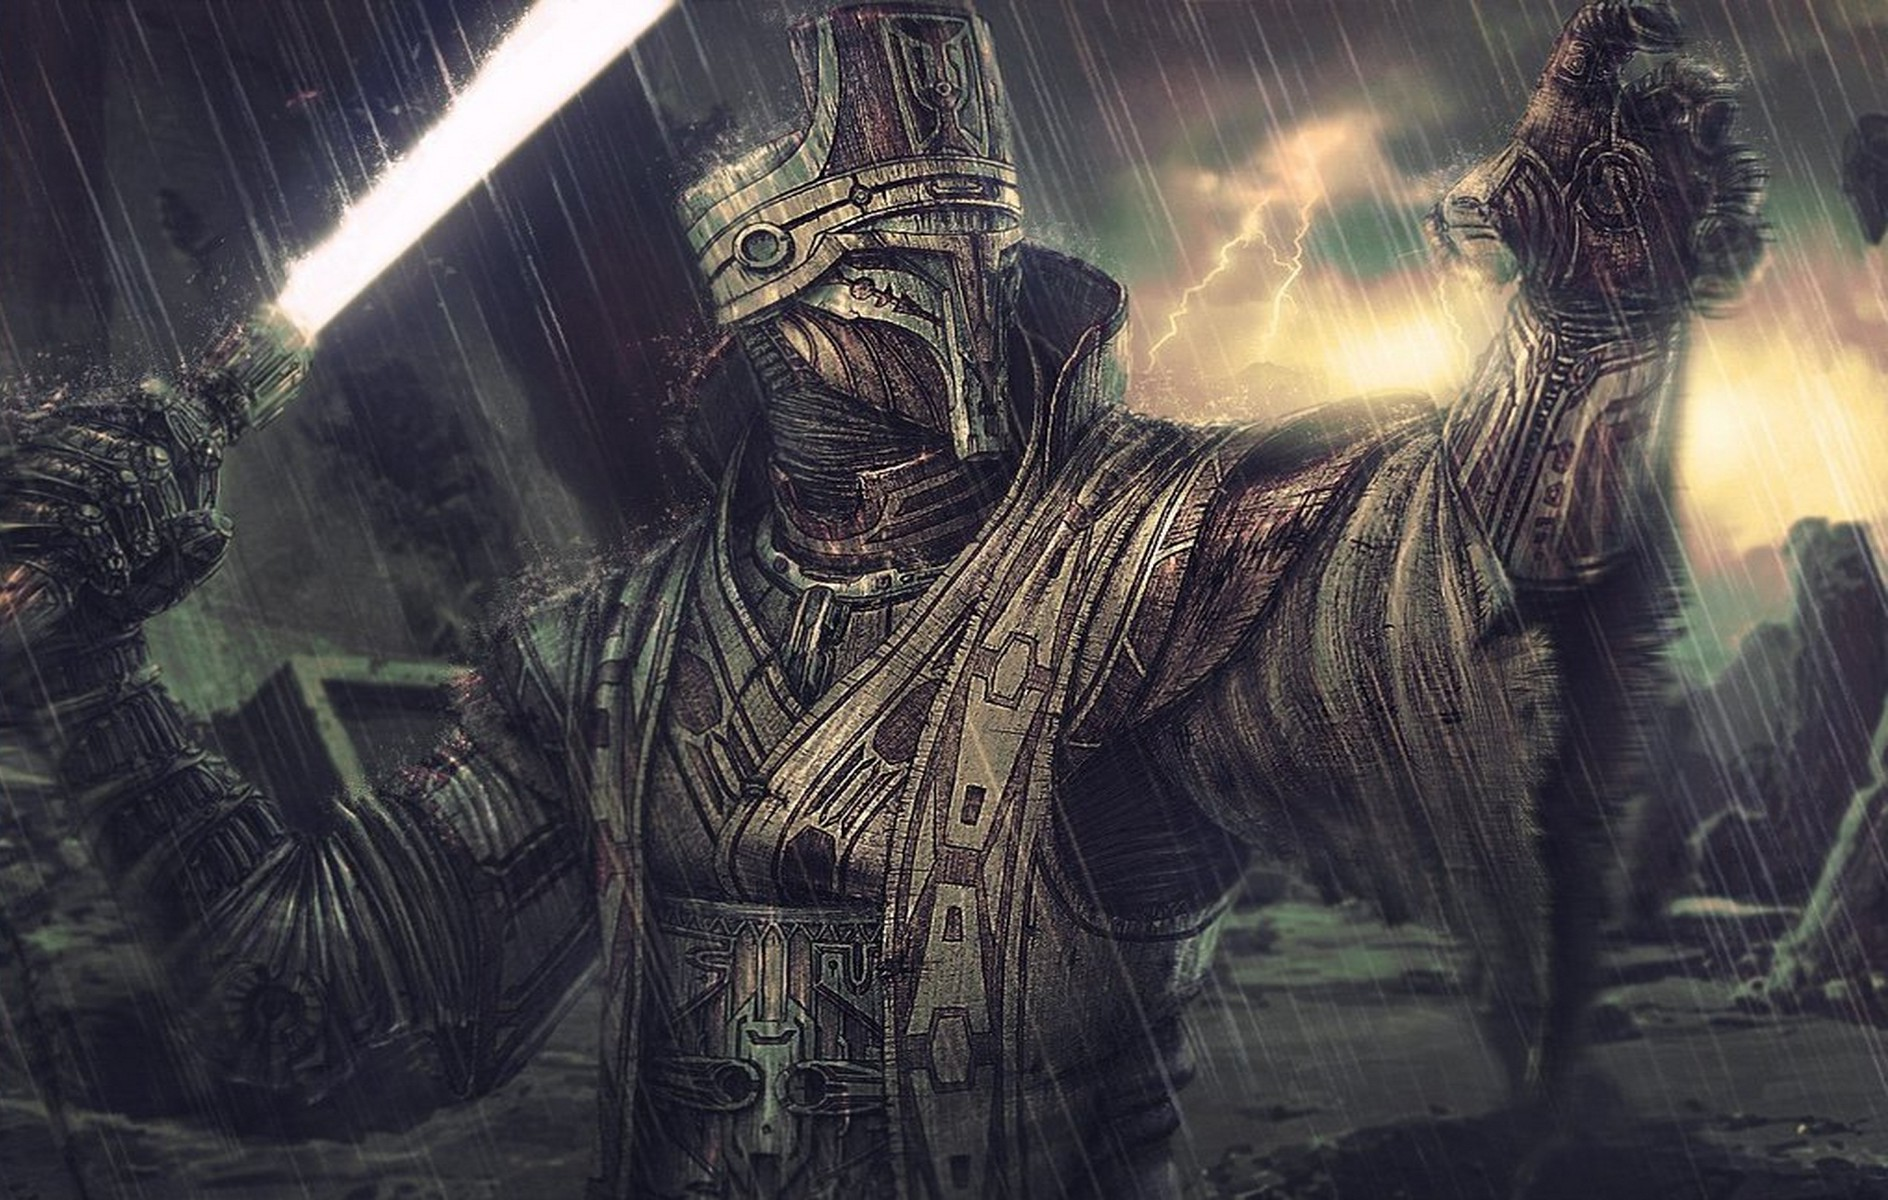 Sith Wallpaper Hd Awakened Ancient Death Lord Wallpapers Hd Desktop And